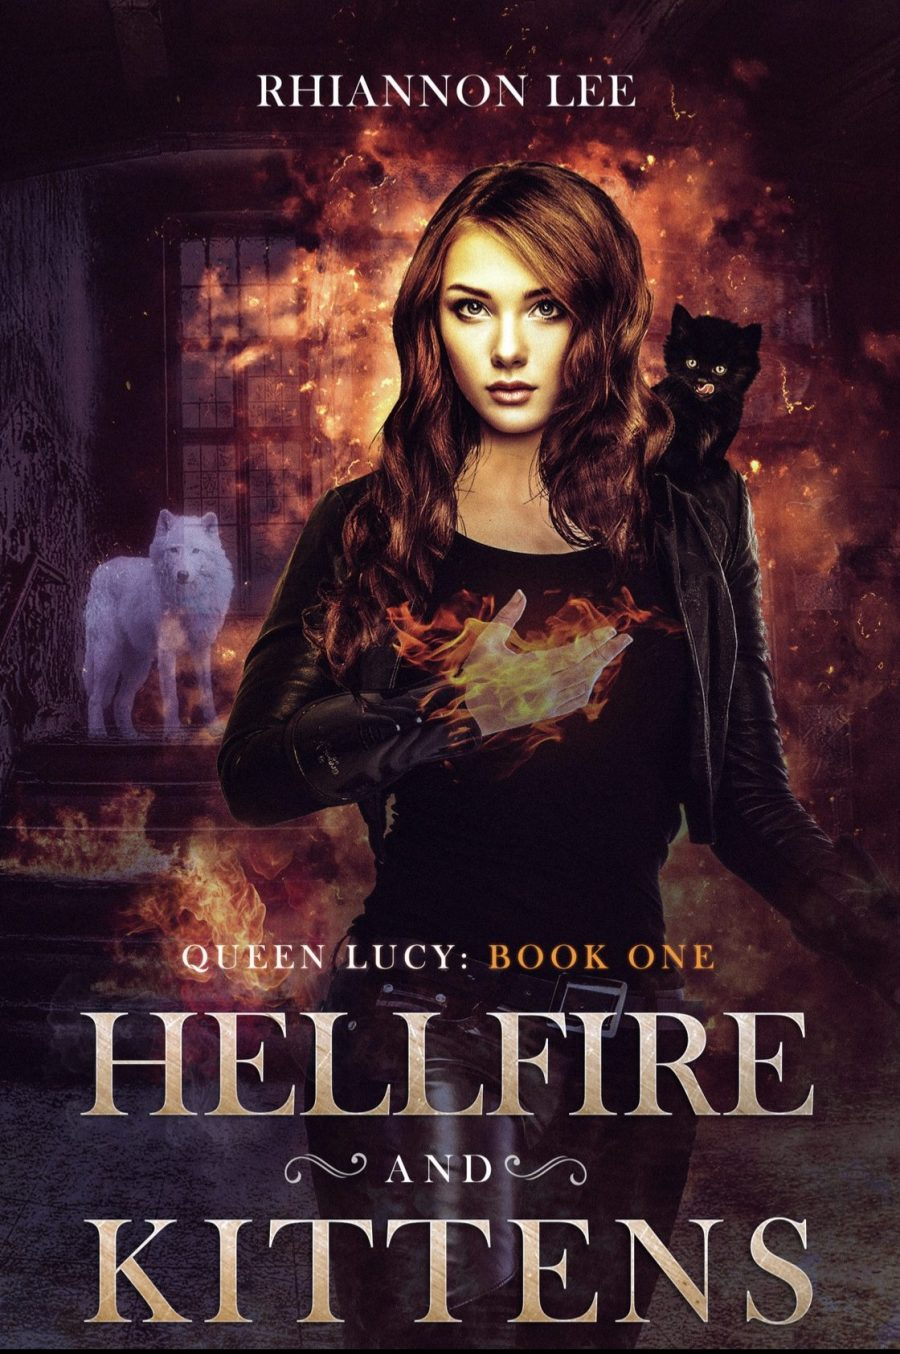 Hellfire and Kittens *Queen Lucy - Book 1* by Rhiannon Lee - A Book Review #BookReview #RH #WhyChoose #SlowBurn #Demons #Hell #Devil #Paranormal #PNR